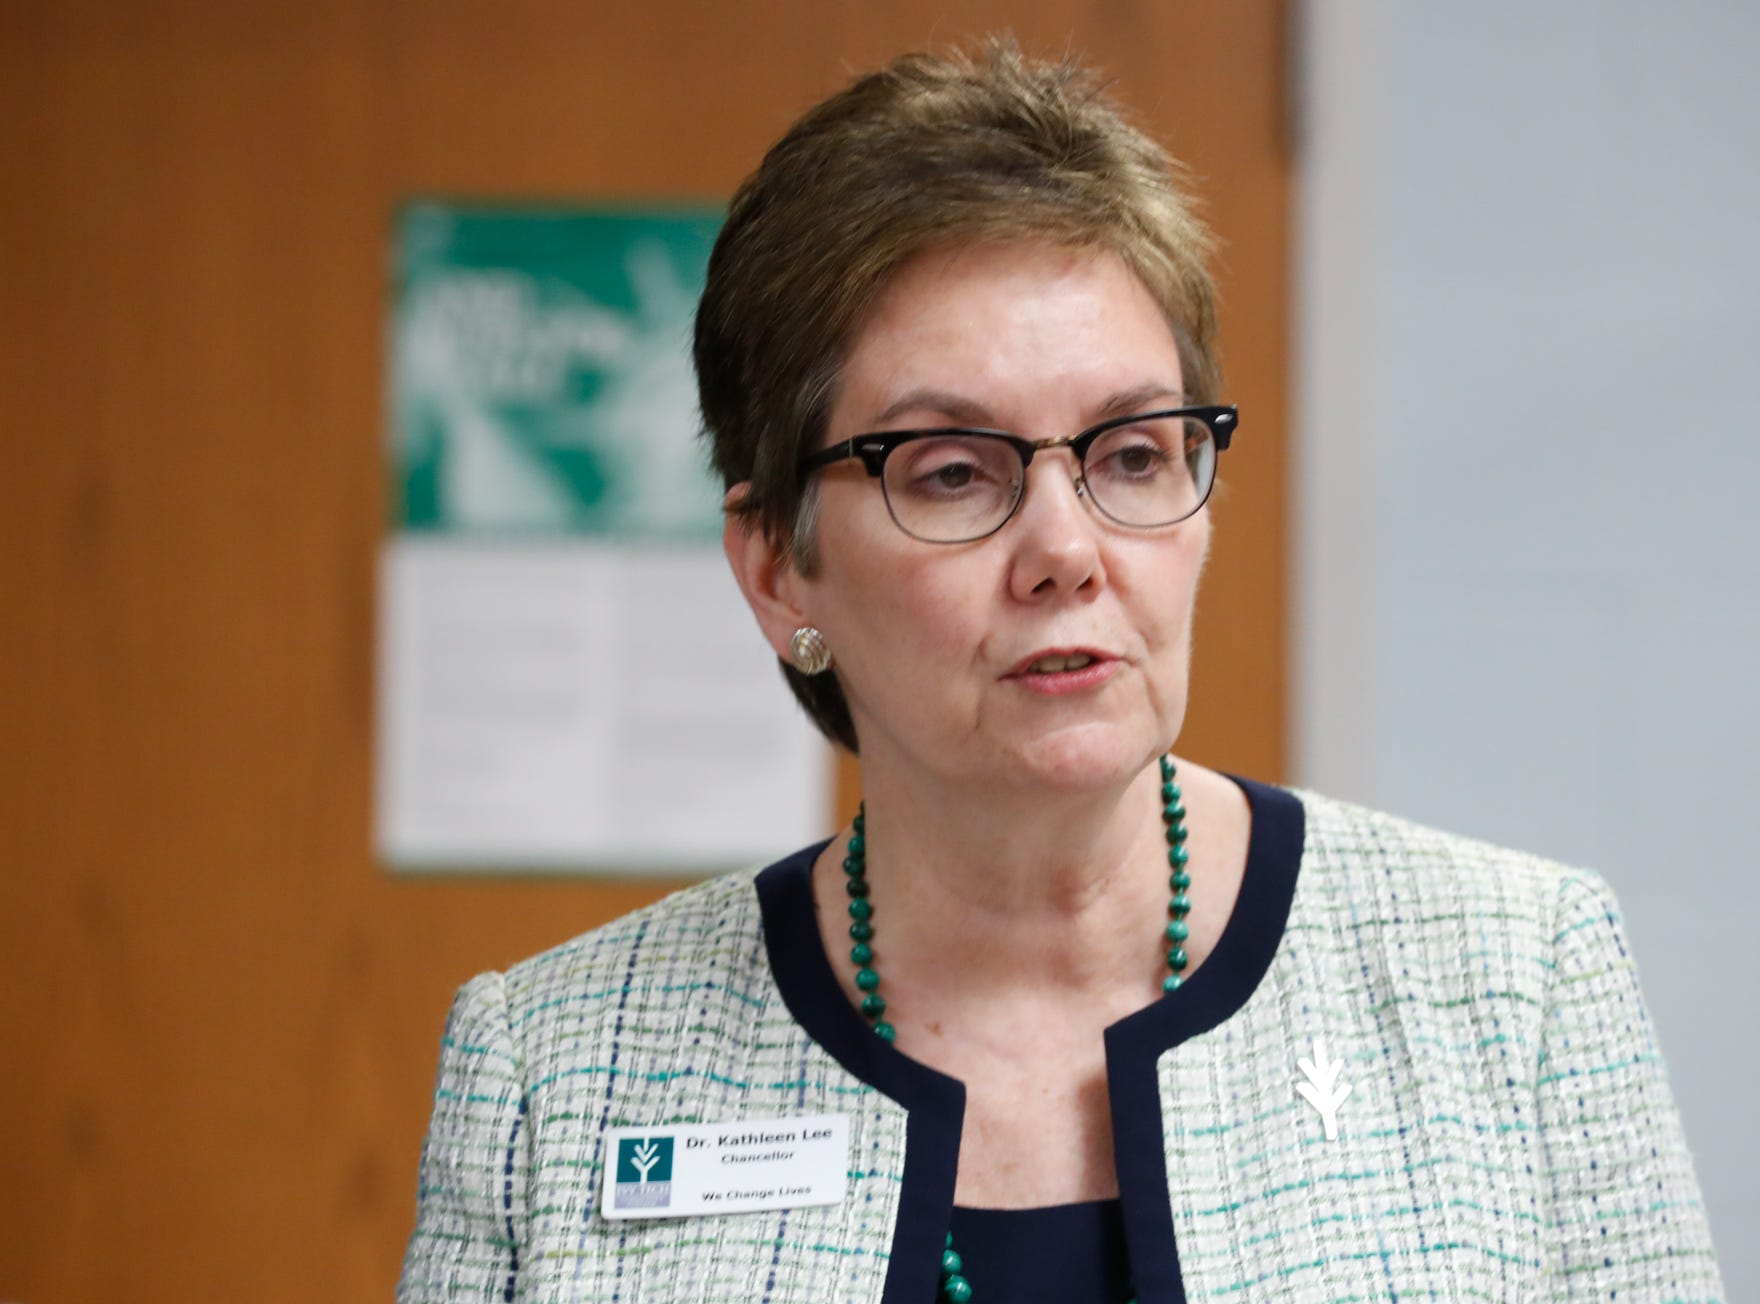 Dr. Kathleen Lee, chancellor of Ivy Tech speaks during the official opening of Gleaners Hamilton County Cupboard food pantry at Ivy Tech in Noblesville Ind. on Thursday, Sept. 13, 2018. The Joint partnership among Gleaners, Ivy Tech and Goodwill will serve college students who are food-insecure.